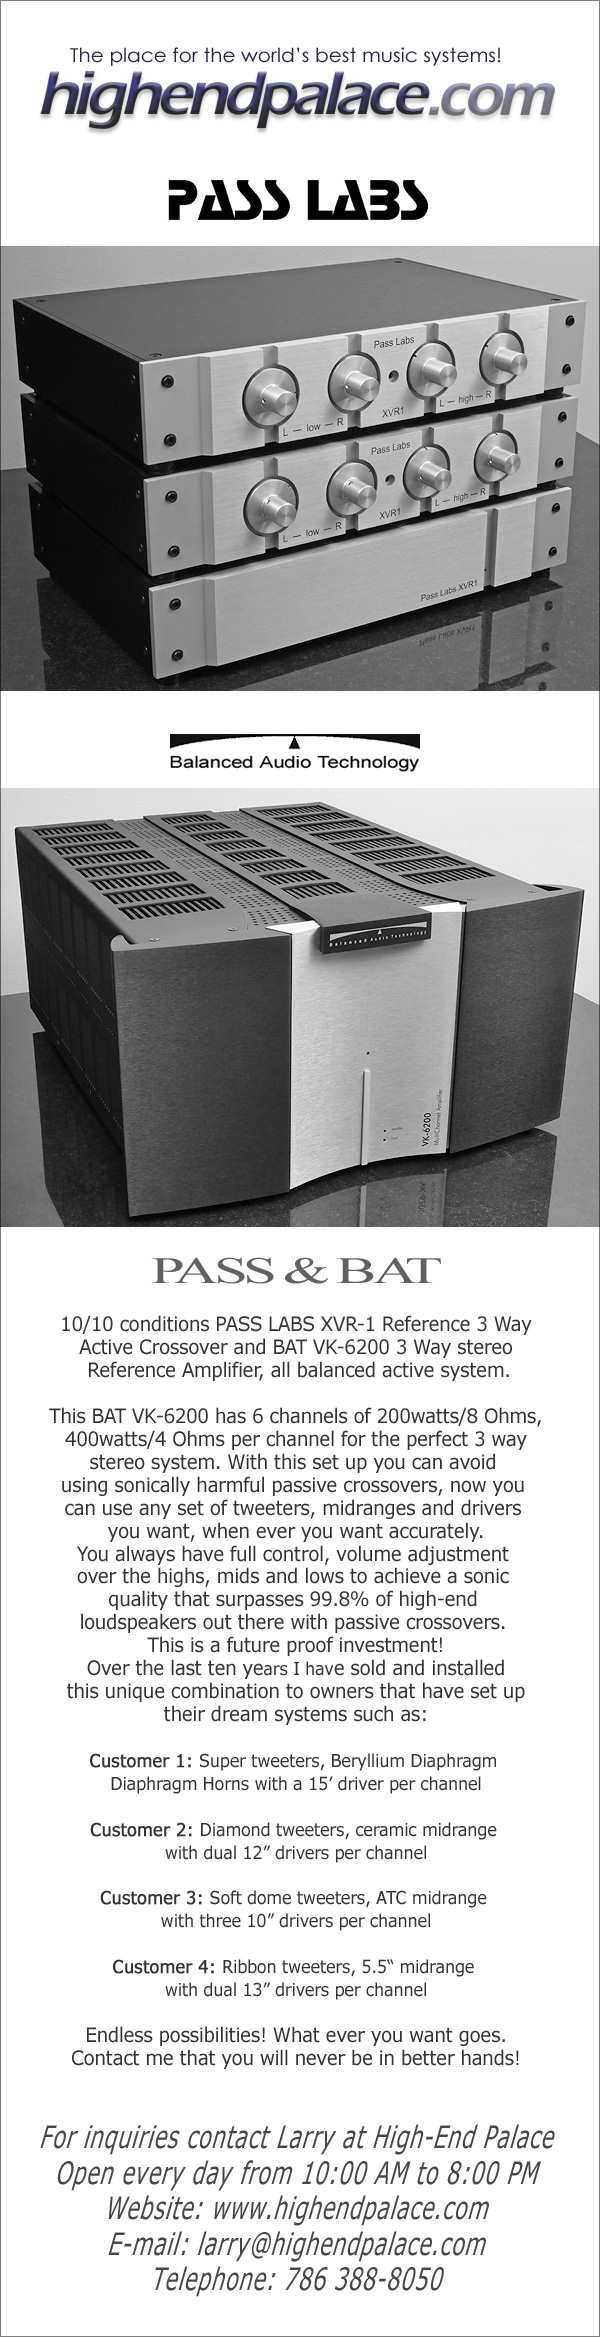 Pass Labs Diy Active Crossover Subwoofer With Lm741 Ic Electronic Circuit Xrv 1 3 Way Reference Bat Amplification Expired